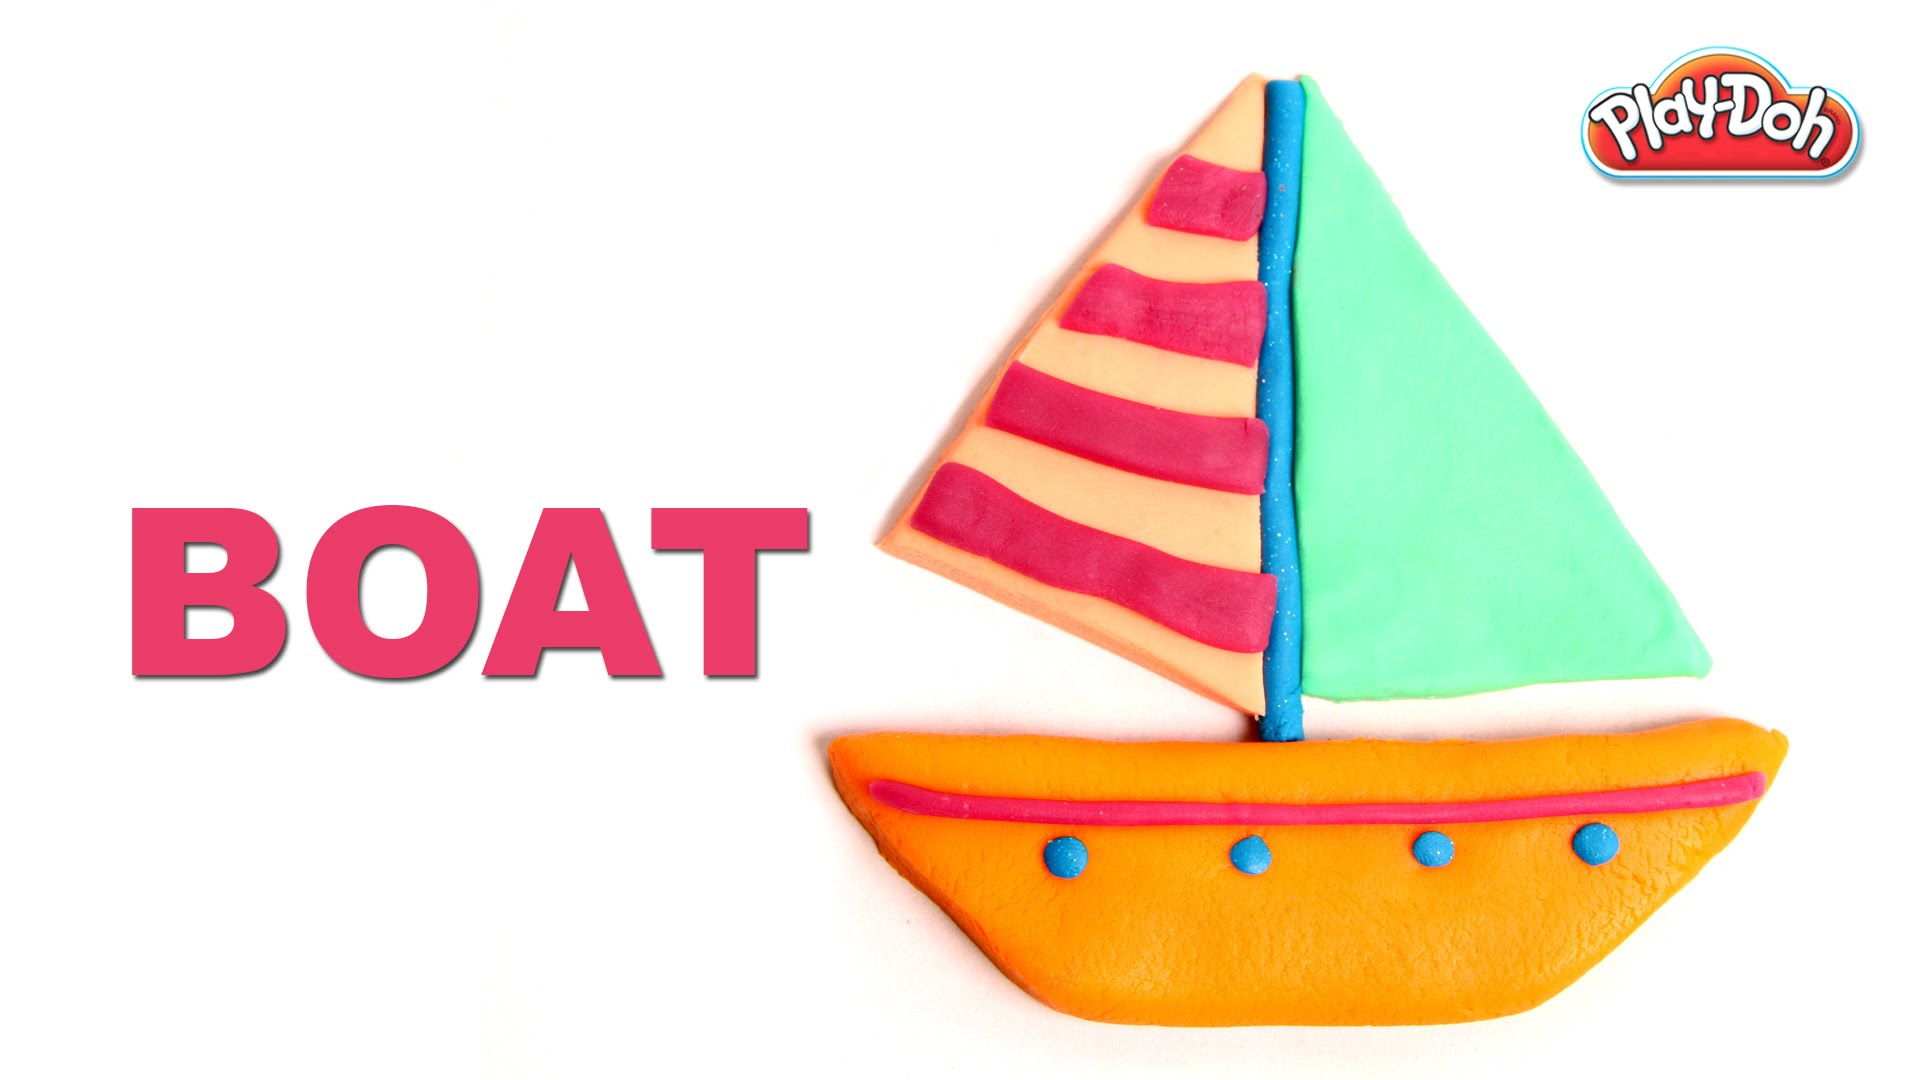 1920x1080 Play Doh Boat Play Doh Video For Kids How To Make Play Doh